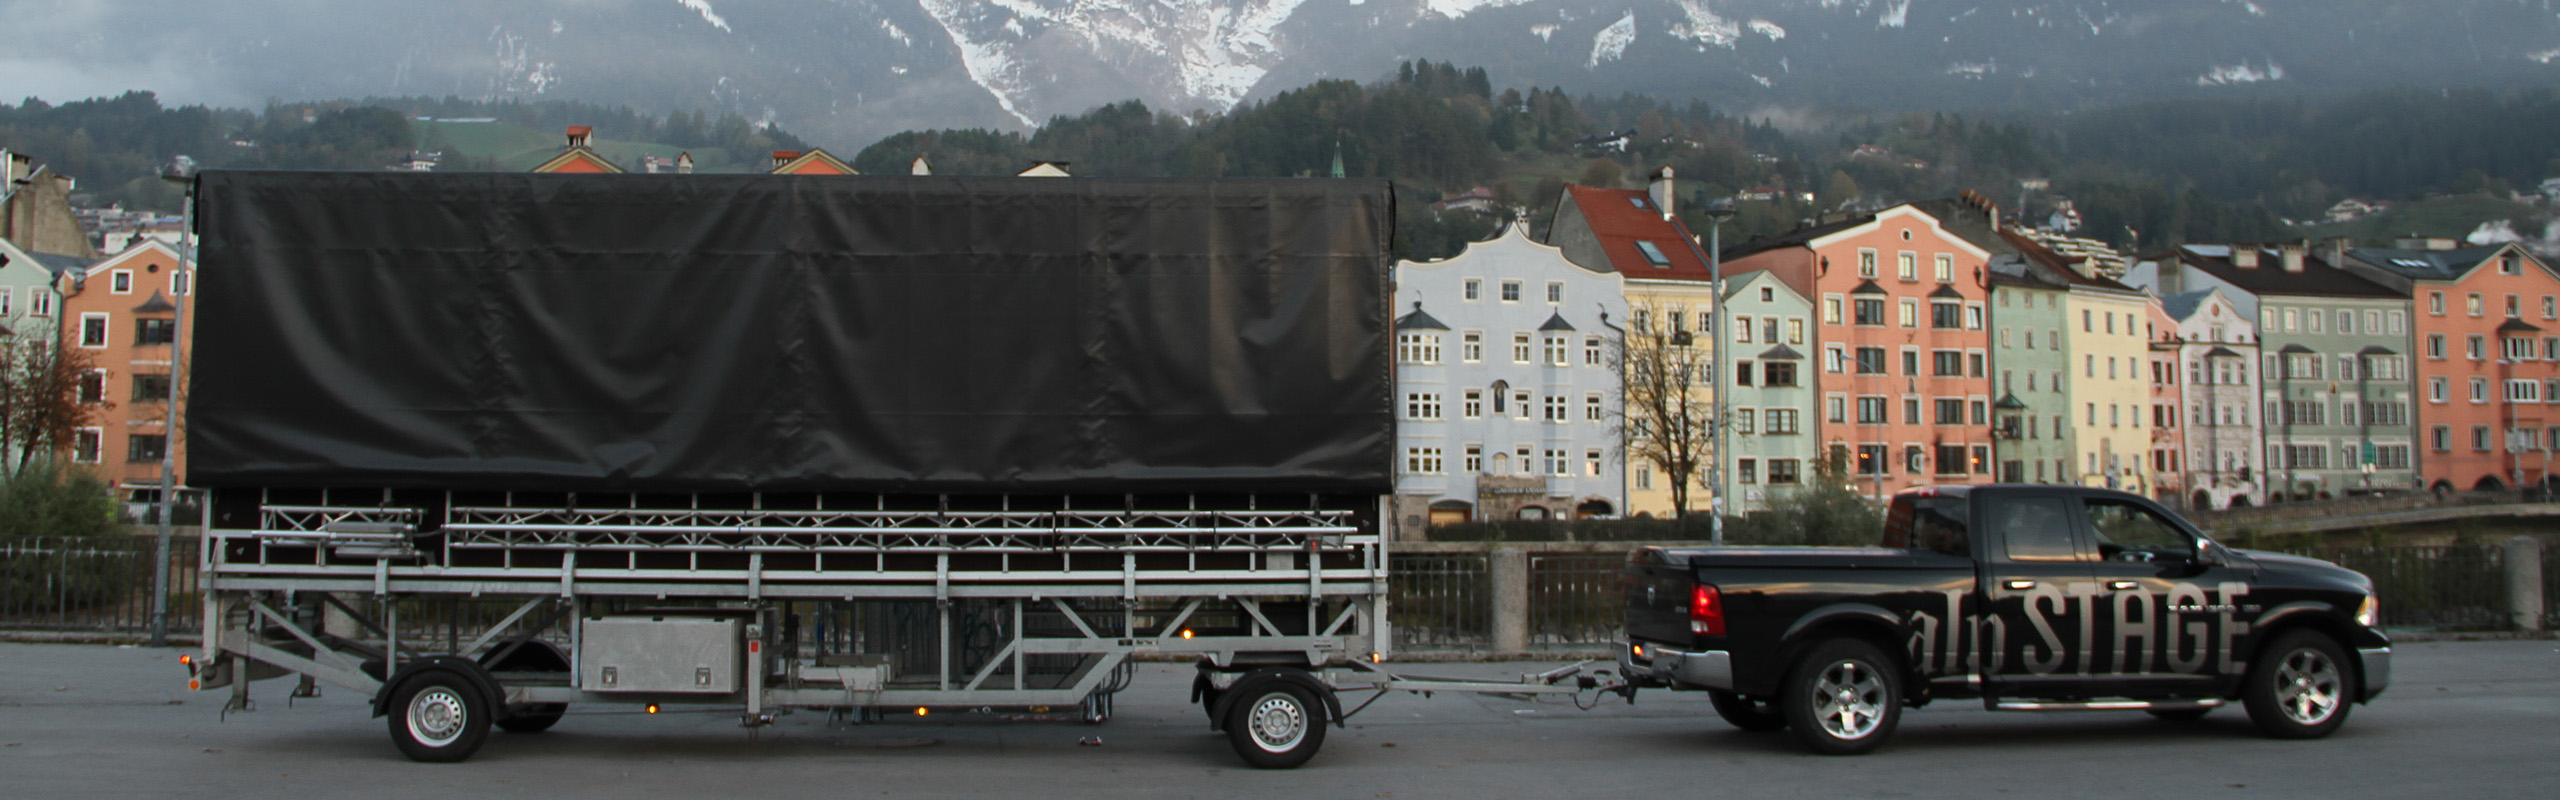 Transport Mobile Buehne Alpstage 5